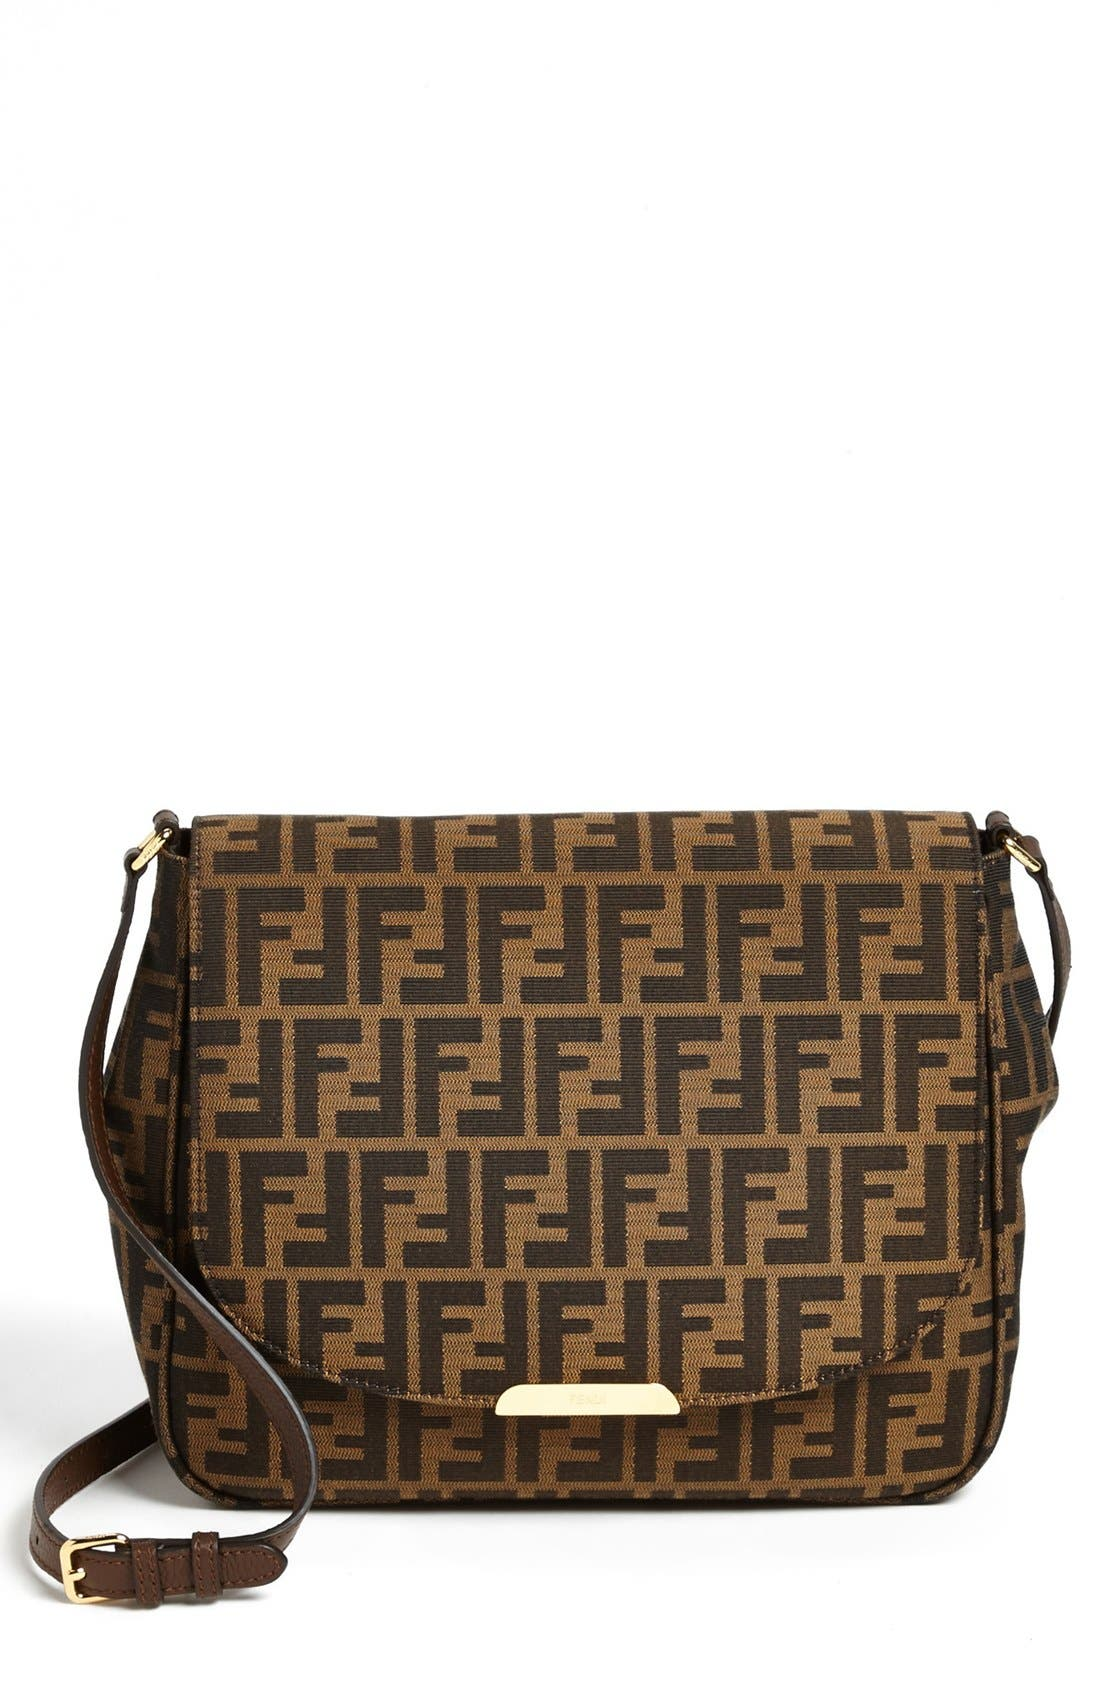 Main Image - Fendi 'Zucca - Large' Logo Jacquard Crossbody Bag